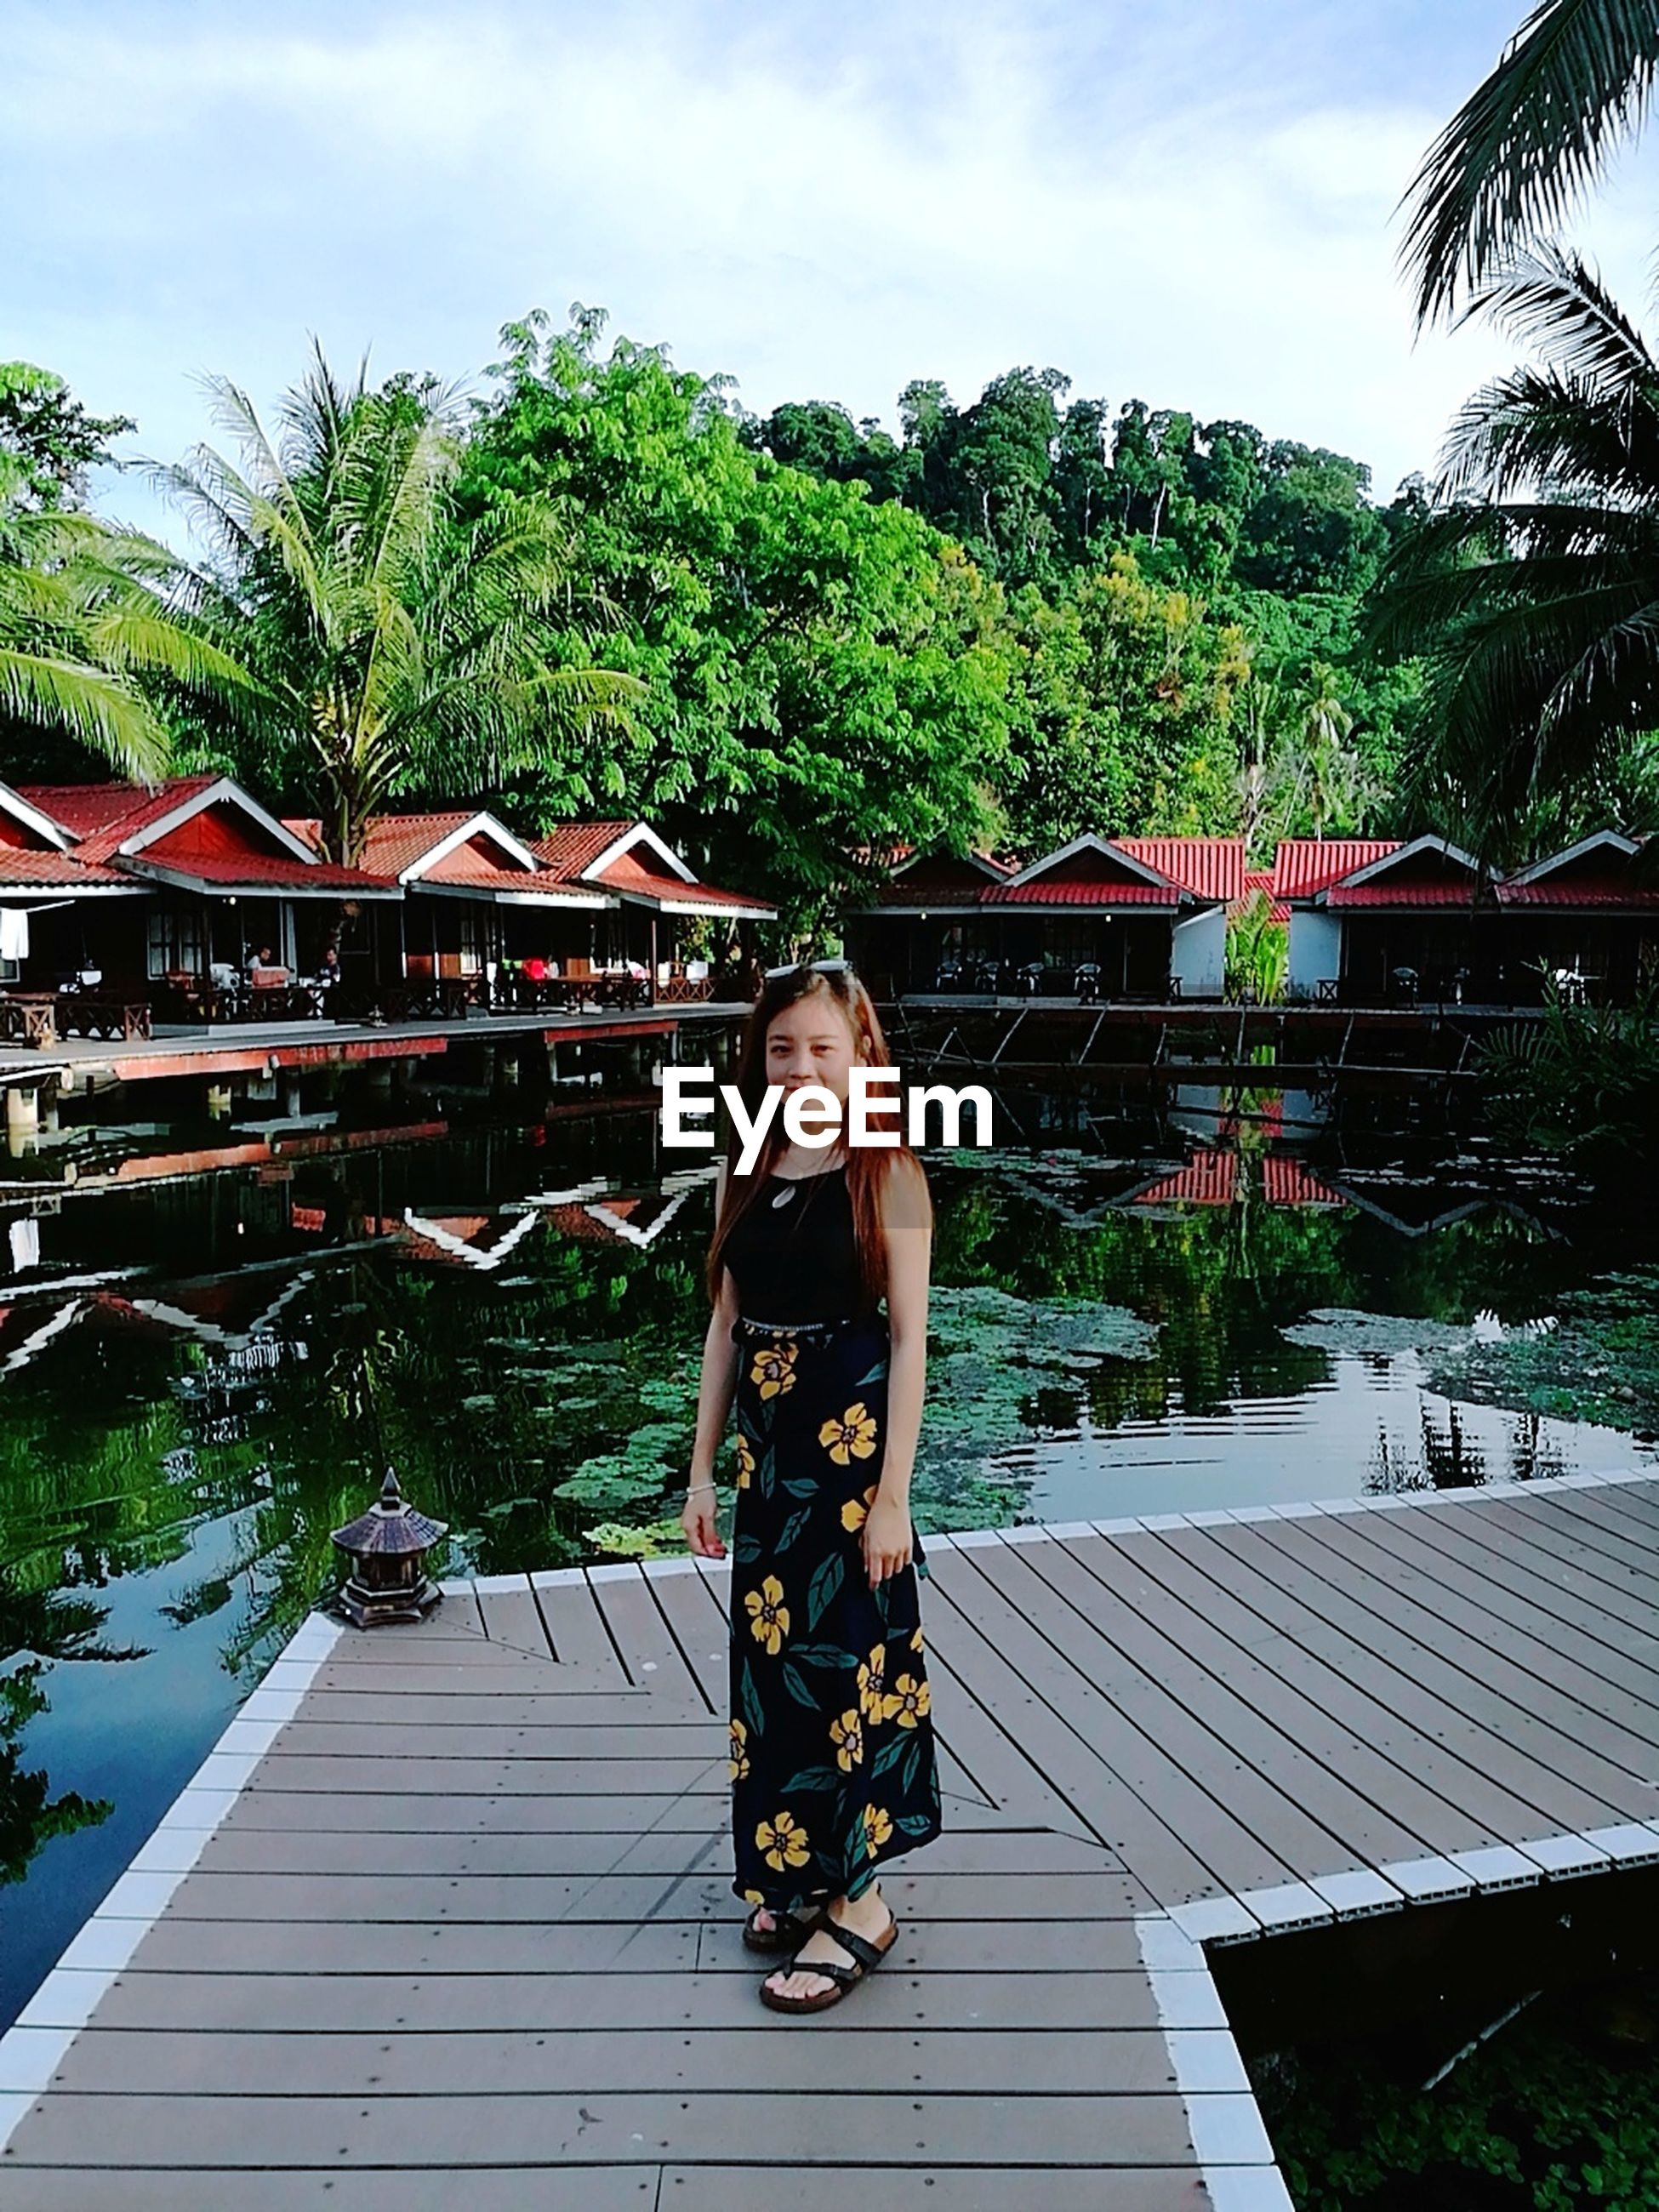 one person, young adult, full length, young women, real people, leisure activity, outdoors, front view, tree, architecture, day, built structure, sky, looking at camera, lifestyles, building exterior, beautiful woman, portrait, water, nature, people